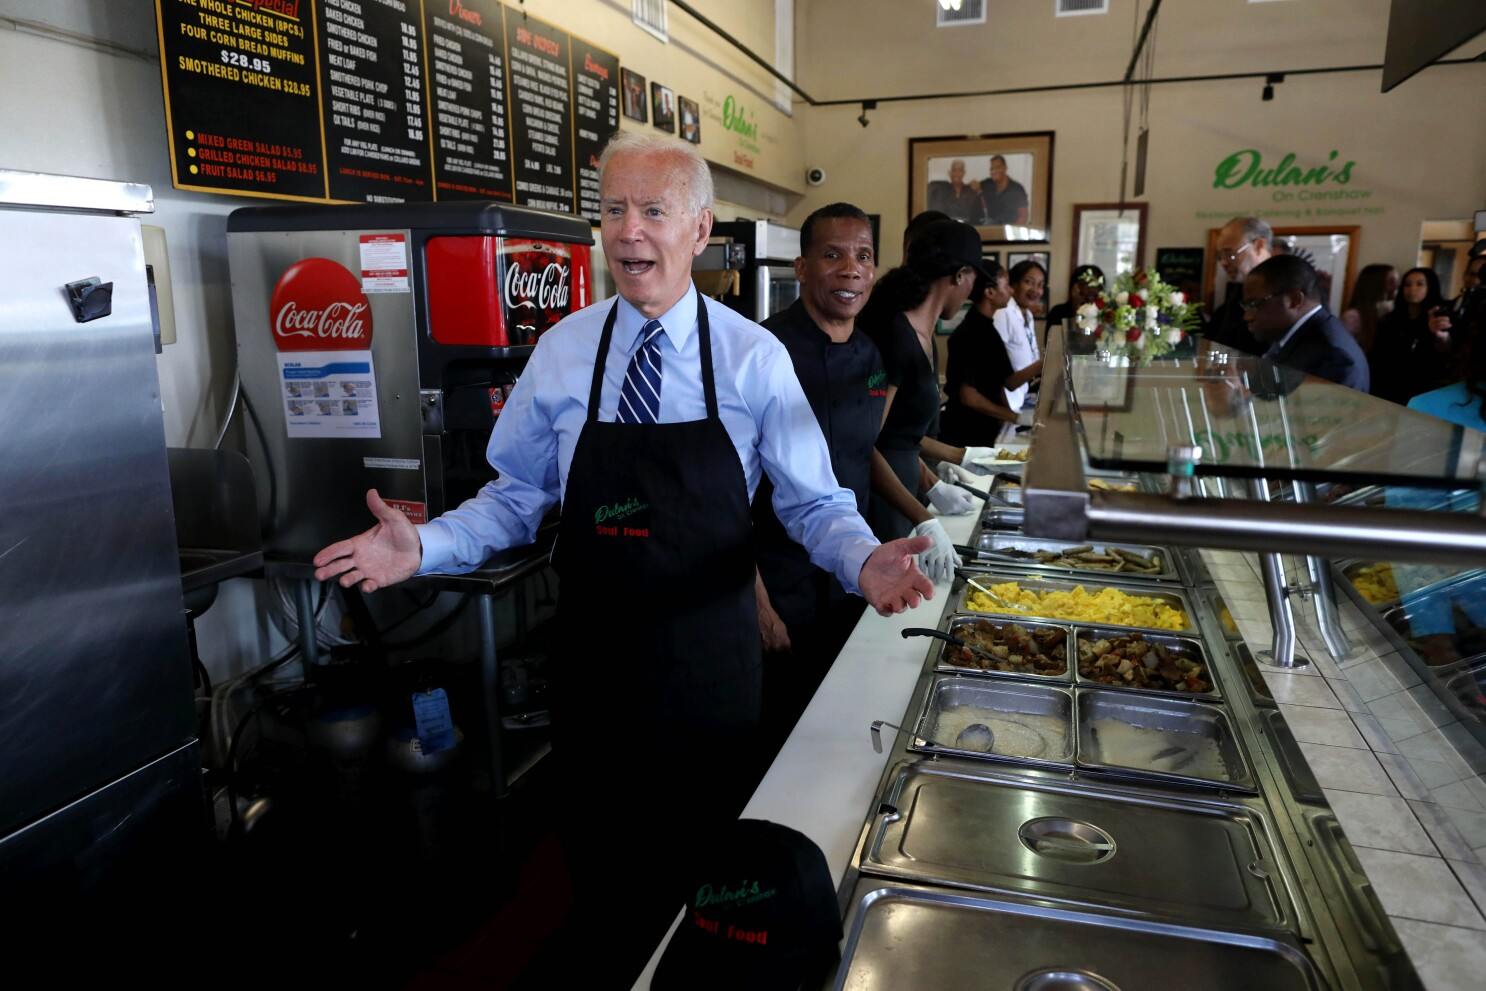 Trump's attacks on Ilhan Omar and other congresswomen are 'despicable,' Joe Biden says in L.A.